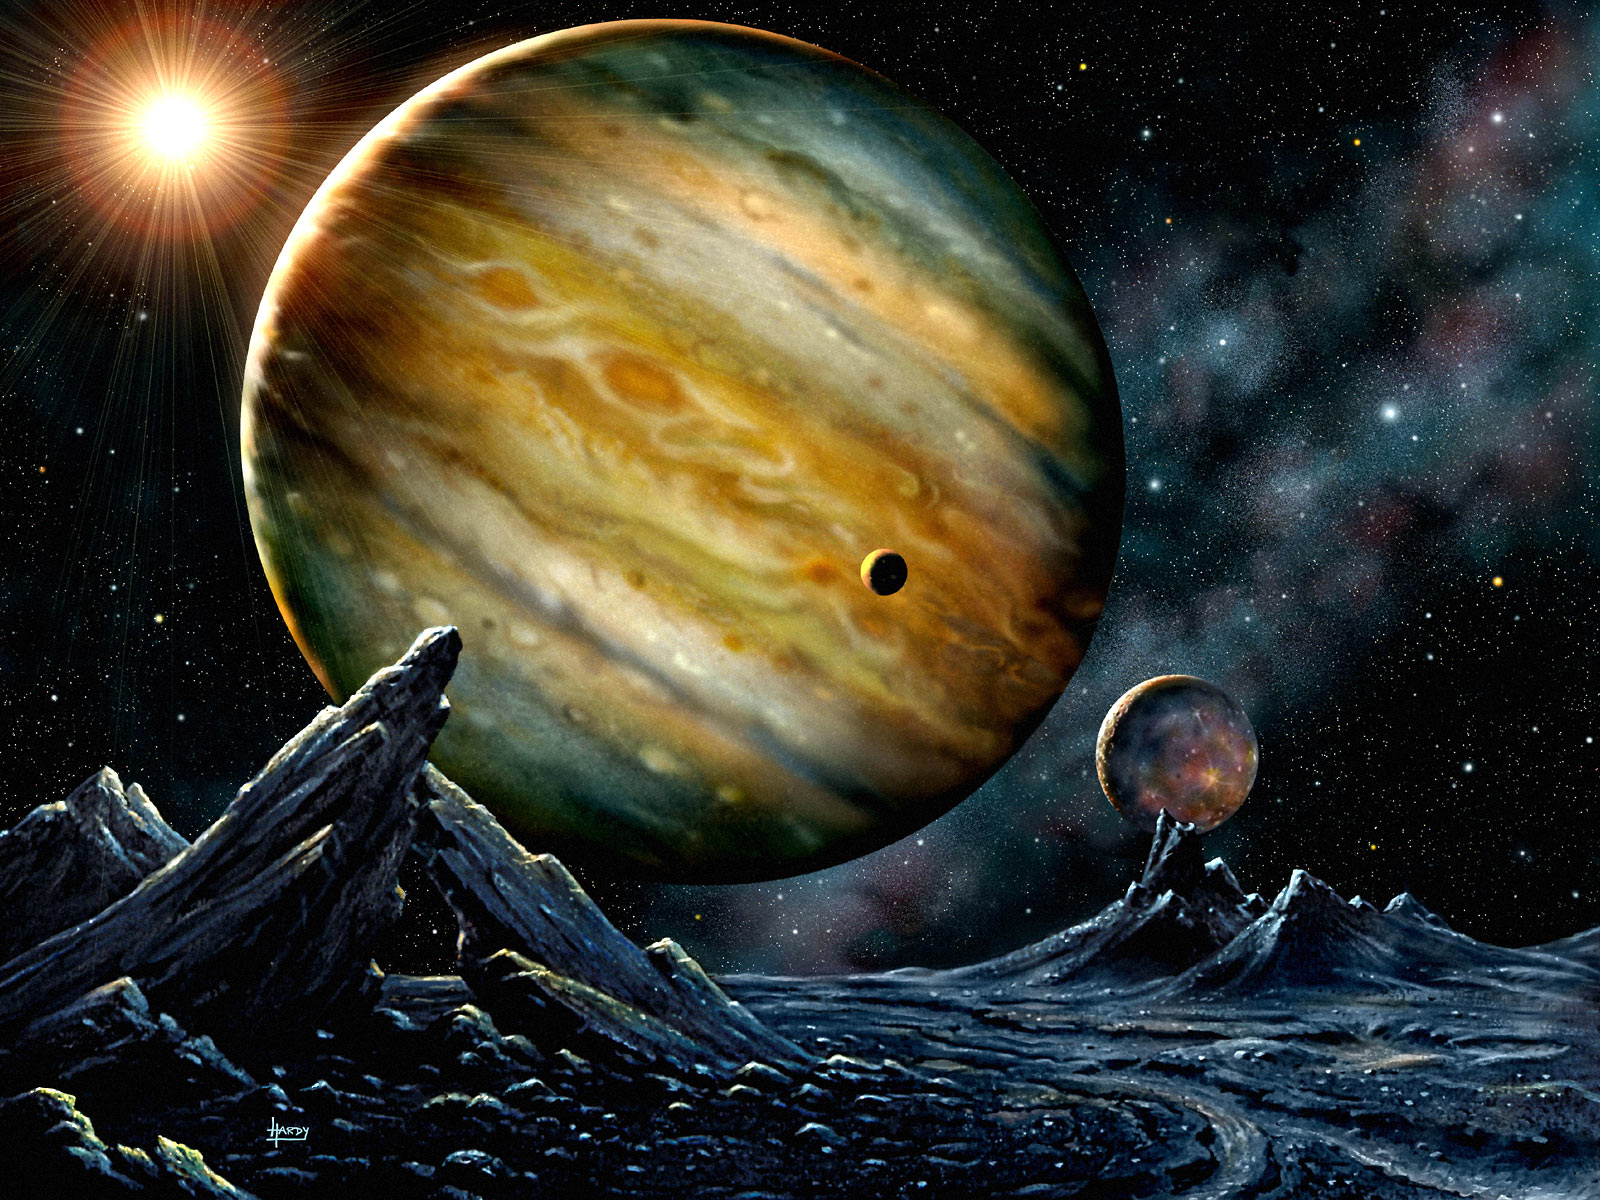 Jupiter Wallpapers Widescreen 6CUS7G5   4USkY 1600x1200